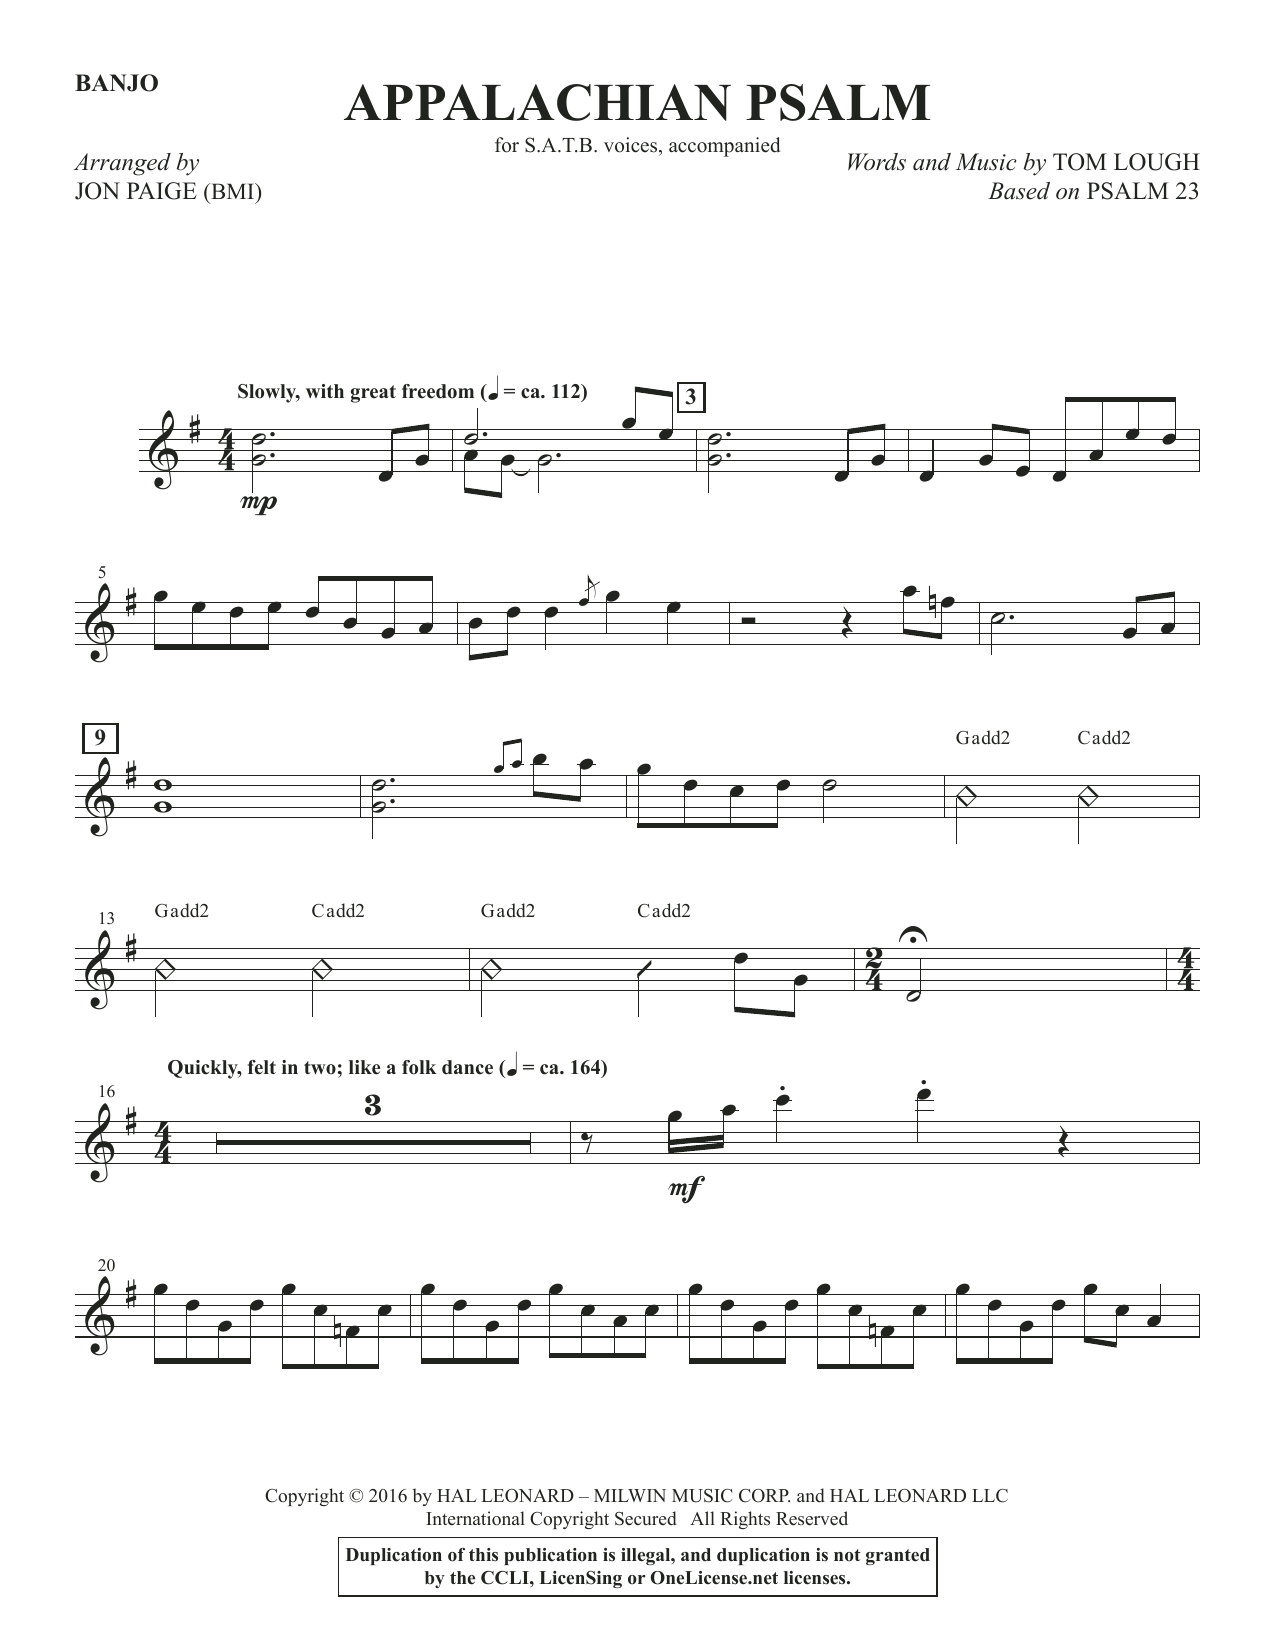 Appalachian Psalm - Banjo Sheet Music